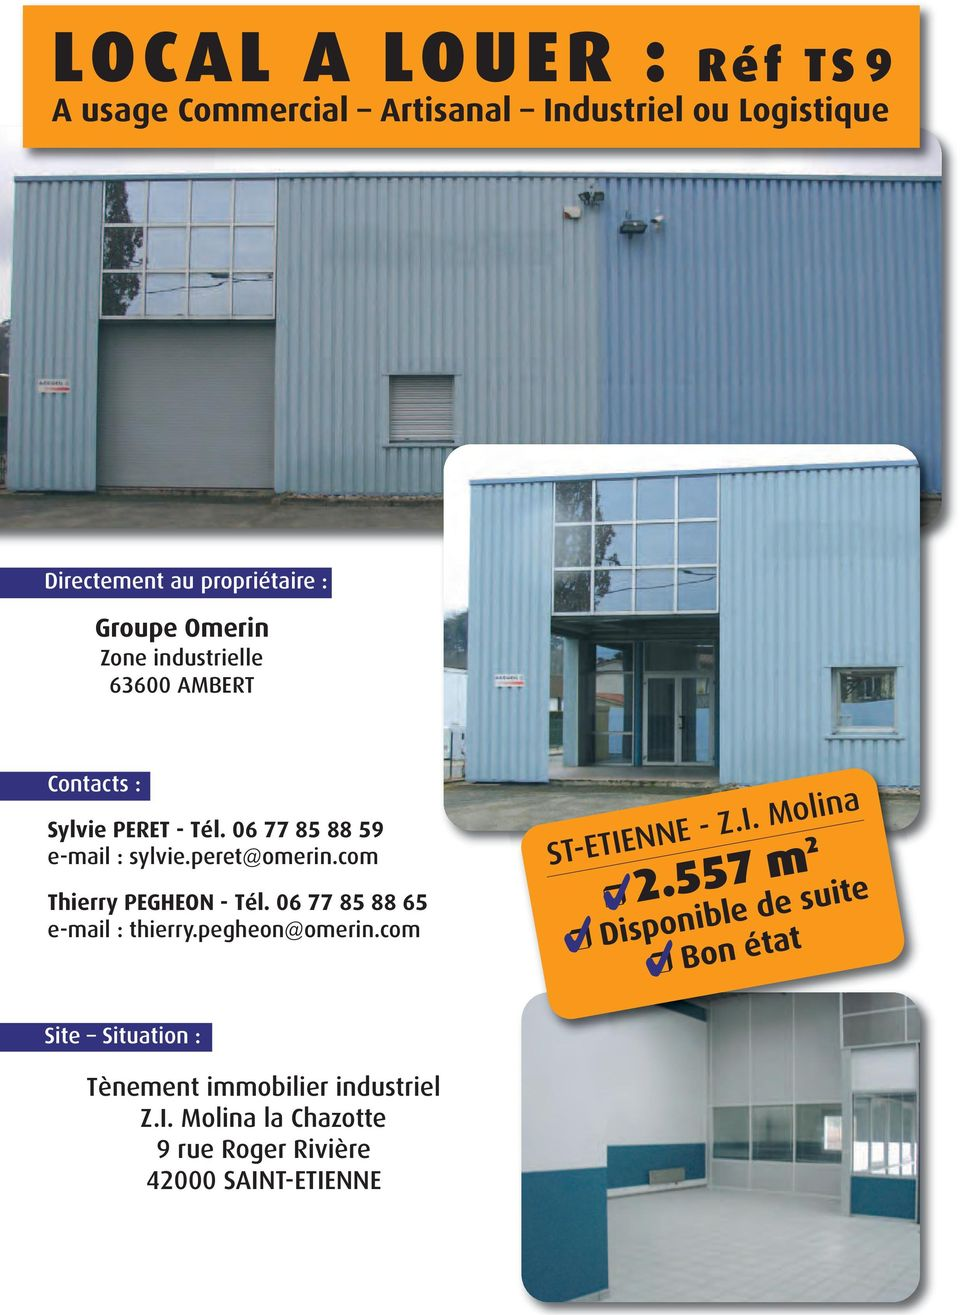 com Thierry PEGHEON - Tél. 06 77 85 88 65 e-mail : thierry.pegheon@omerin.com ST-ETIENNE - Z.I. Molina 2.